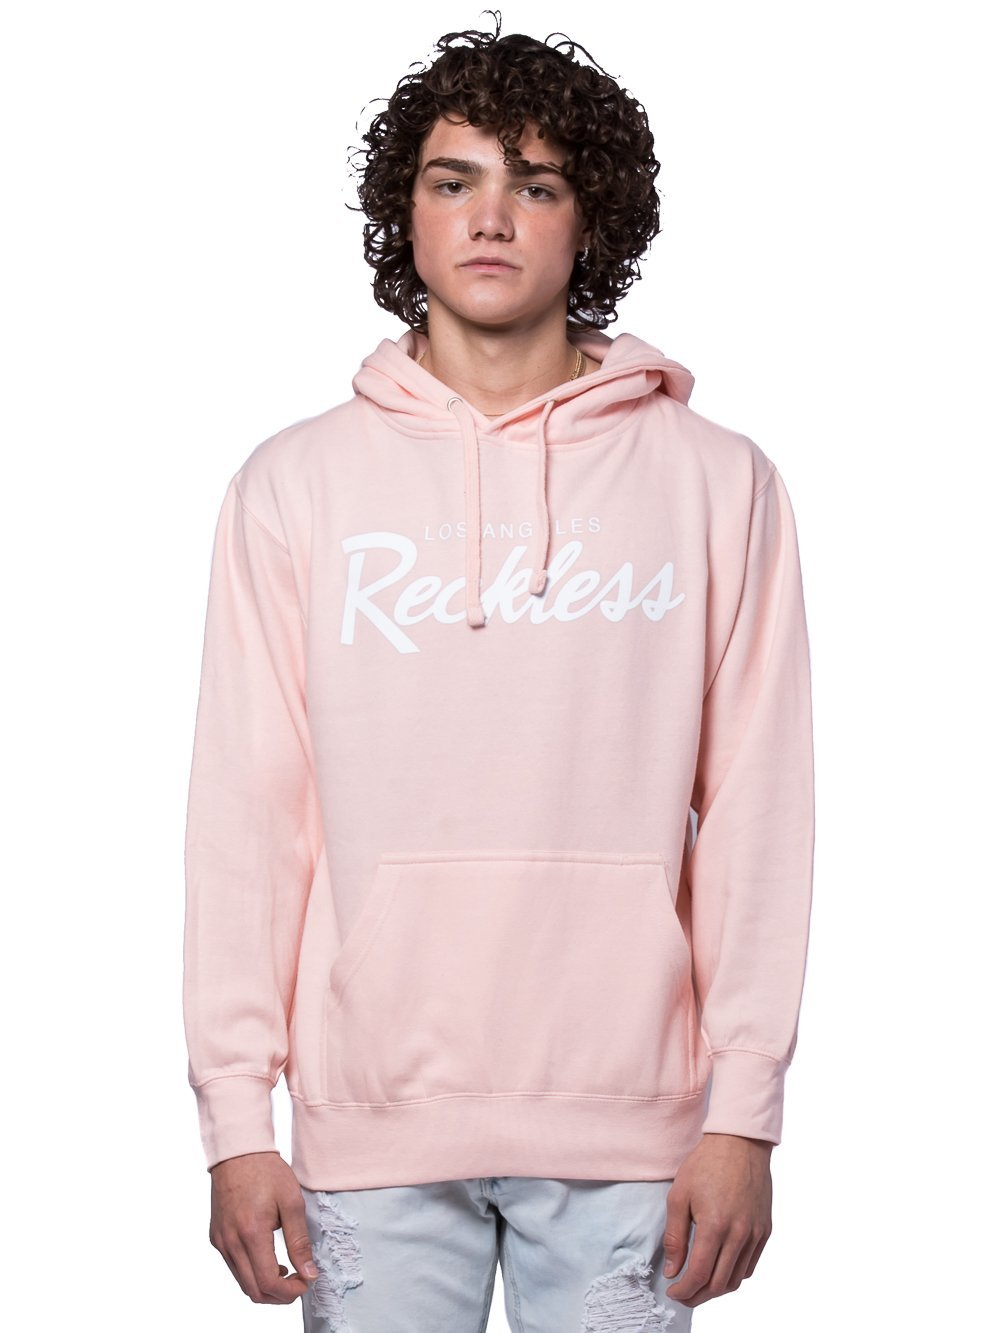 Young and Reckless Mens - Tops - Hoodies OG Reckless Hoodie - Pale Pink